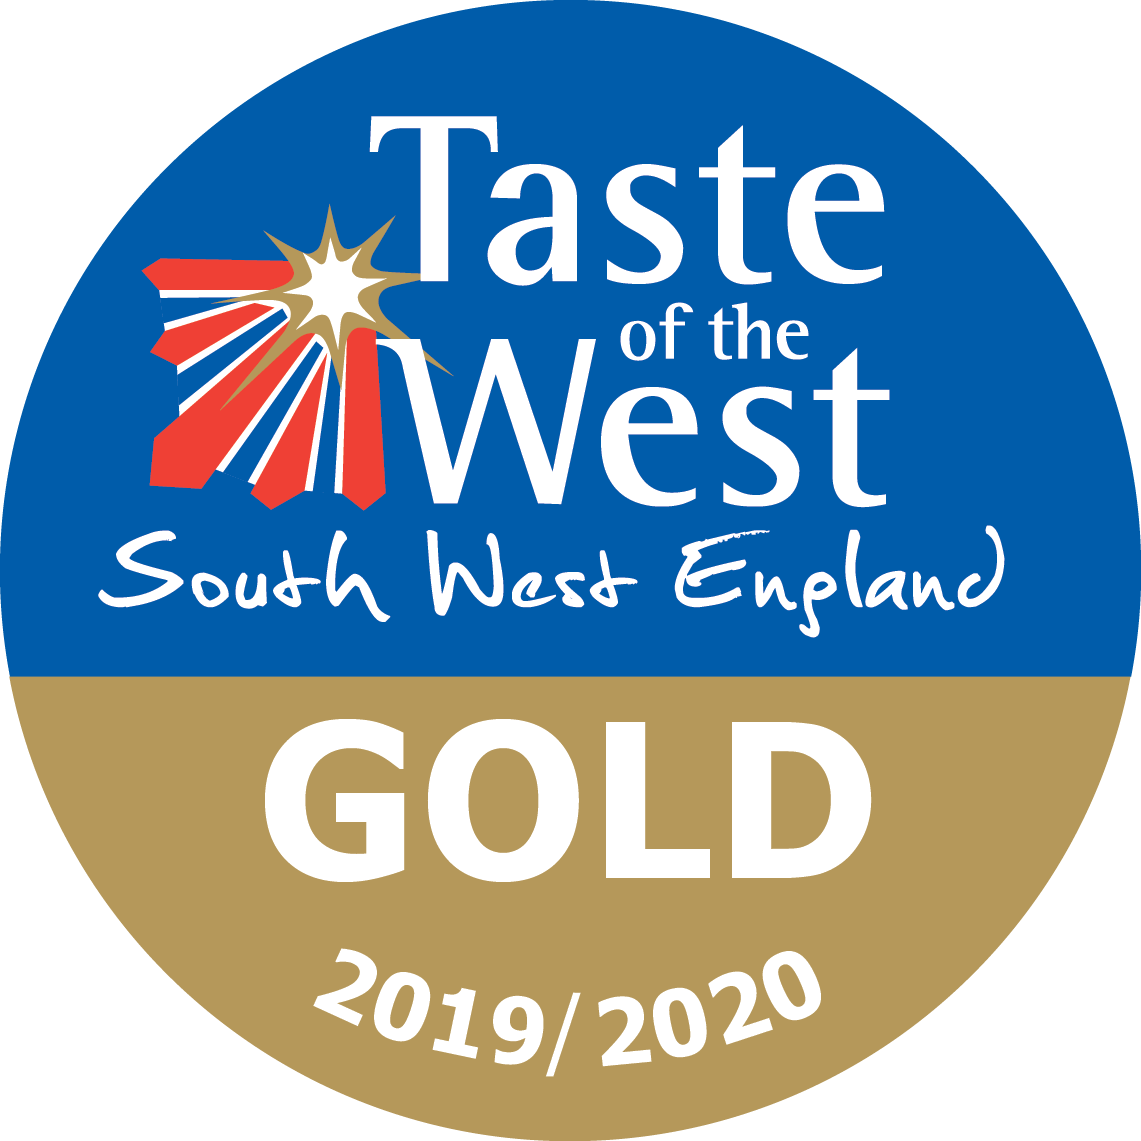 Taste of the West – Gold – 2019/2020